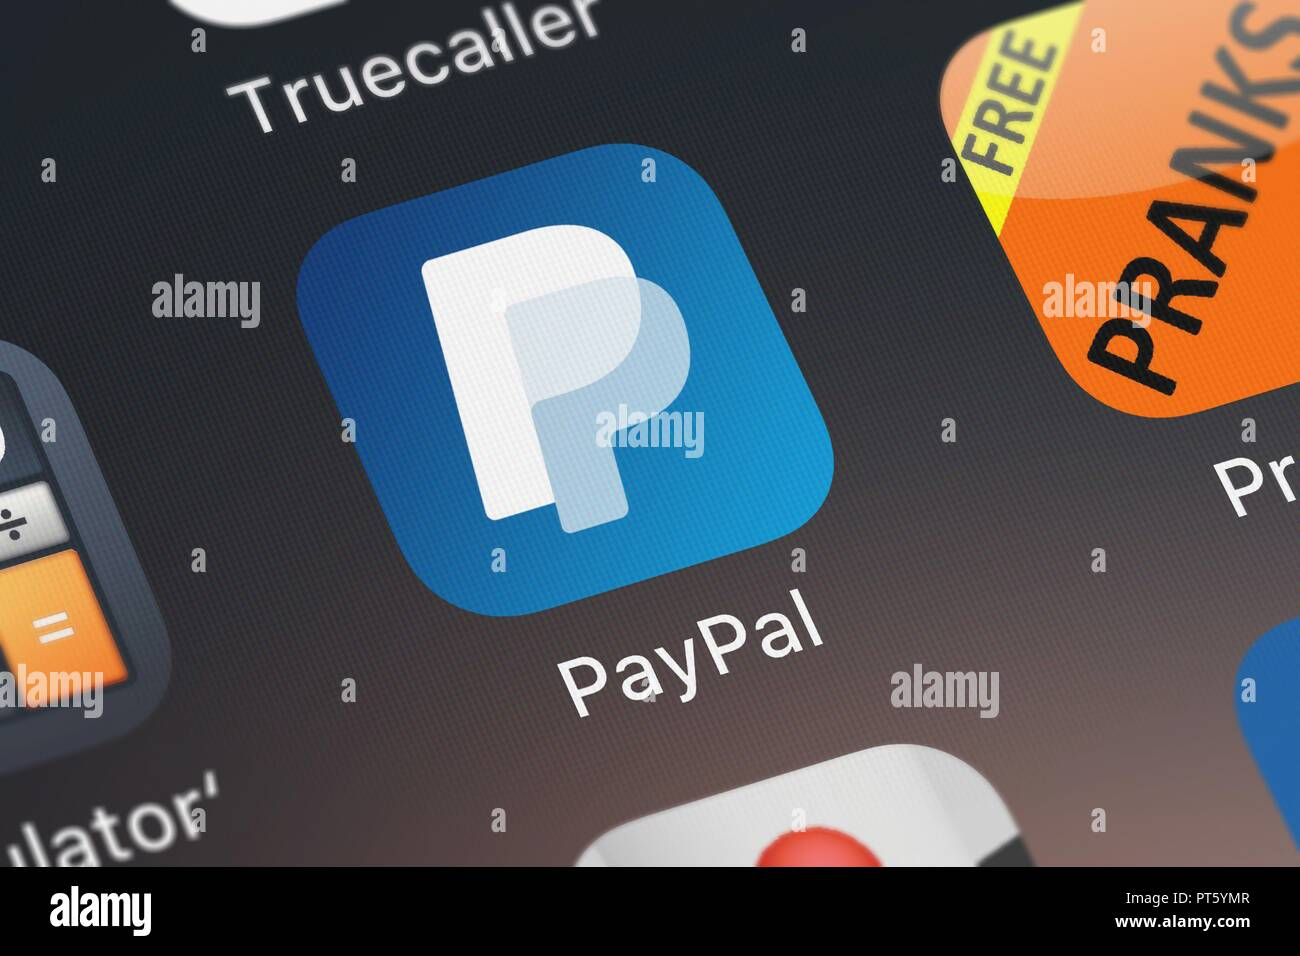 London, United Kingdom - October 06, 2018: The PayPal